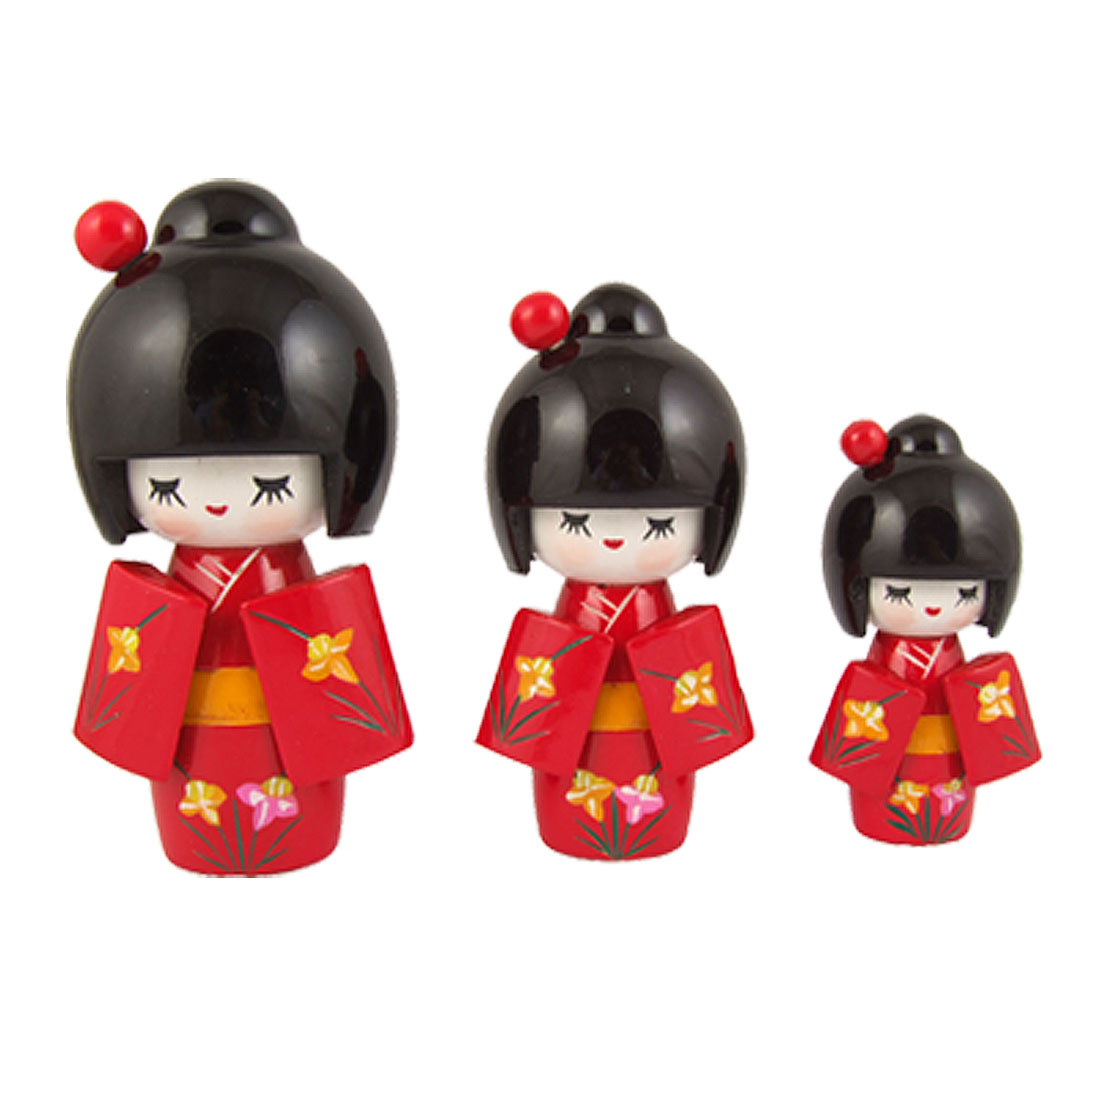 Red Kimono Girl Wooden Kokeshi Doll 3 Pcs